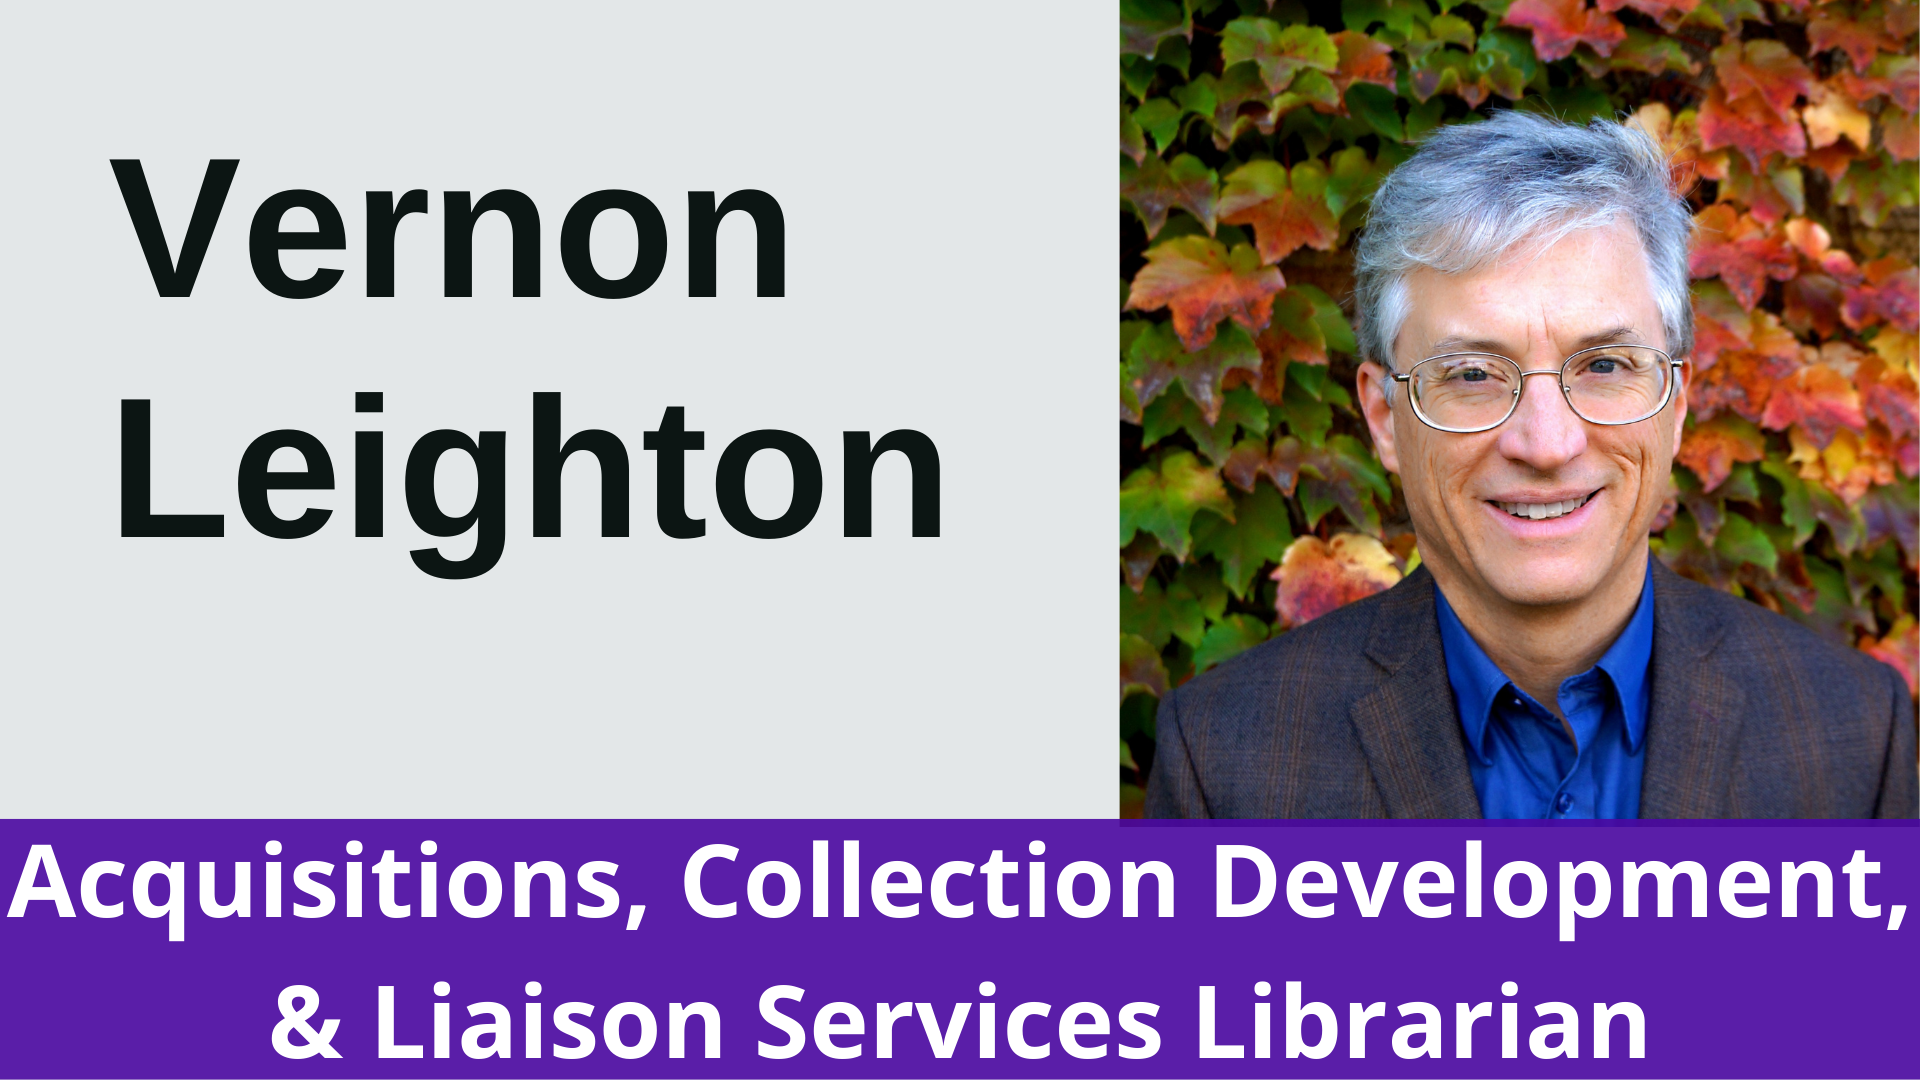 Vernon Leighton Acquisitions, Collection Development, and Liaison Services Librarian